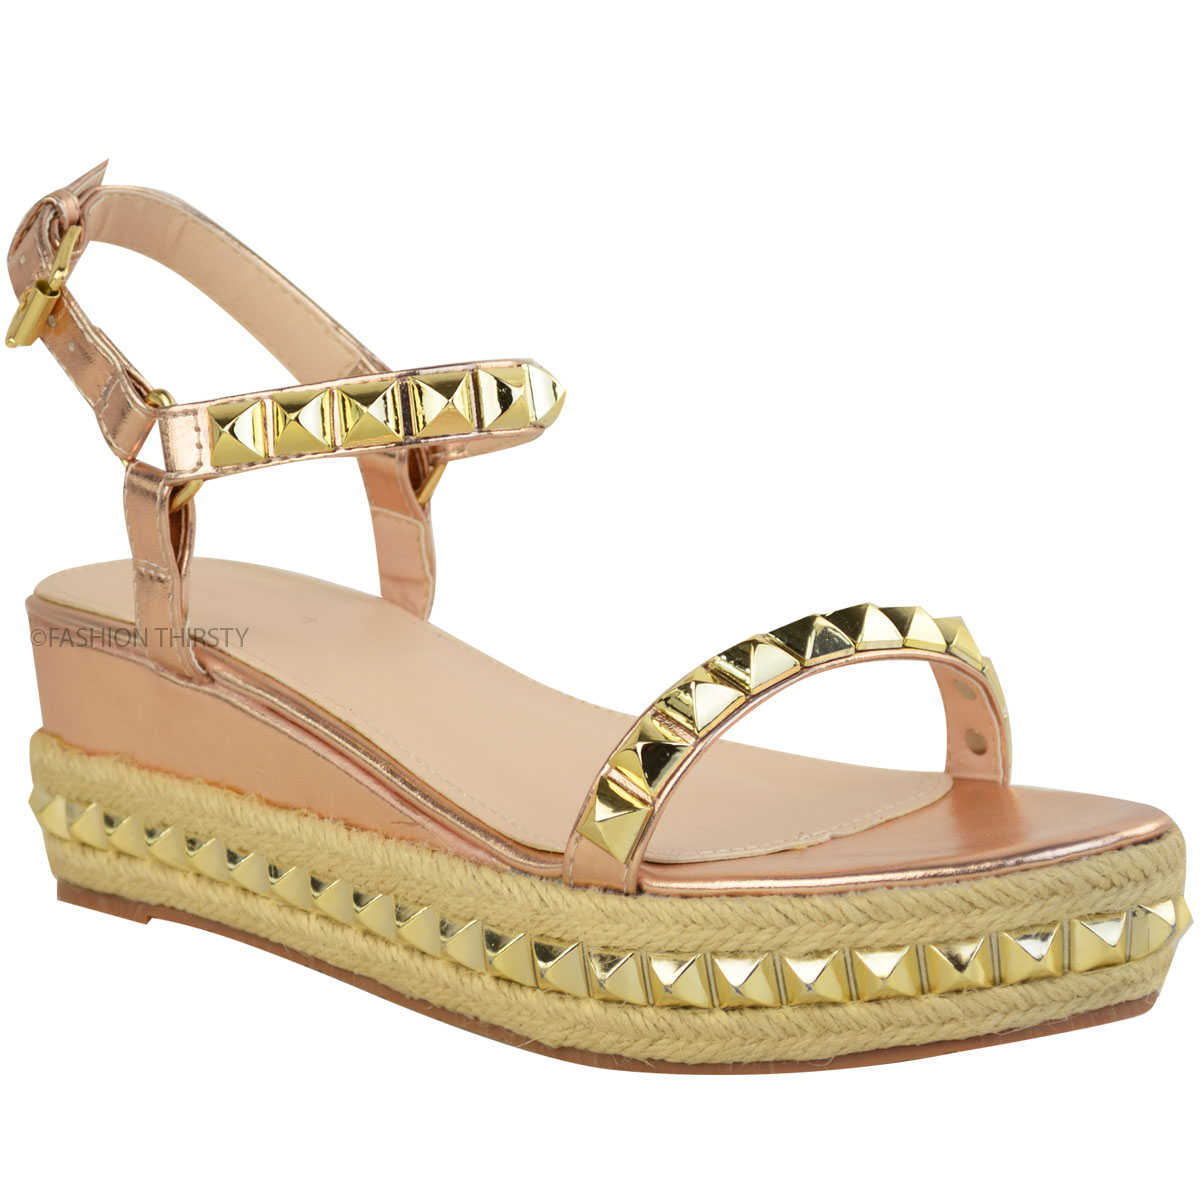 To acquire Wedge Gold sandals pictures picture trends